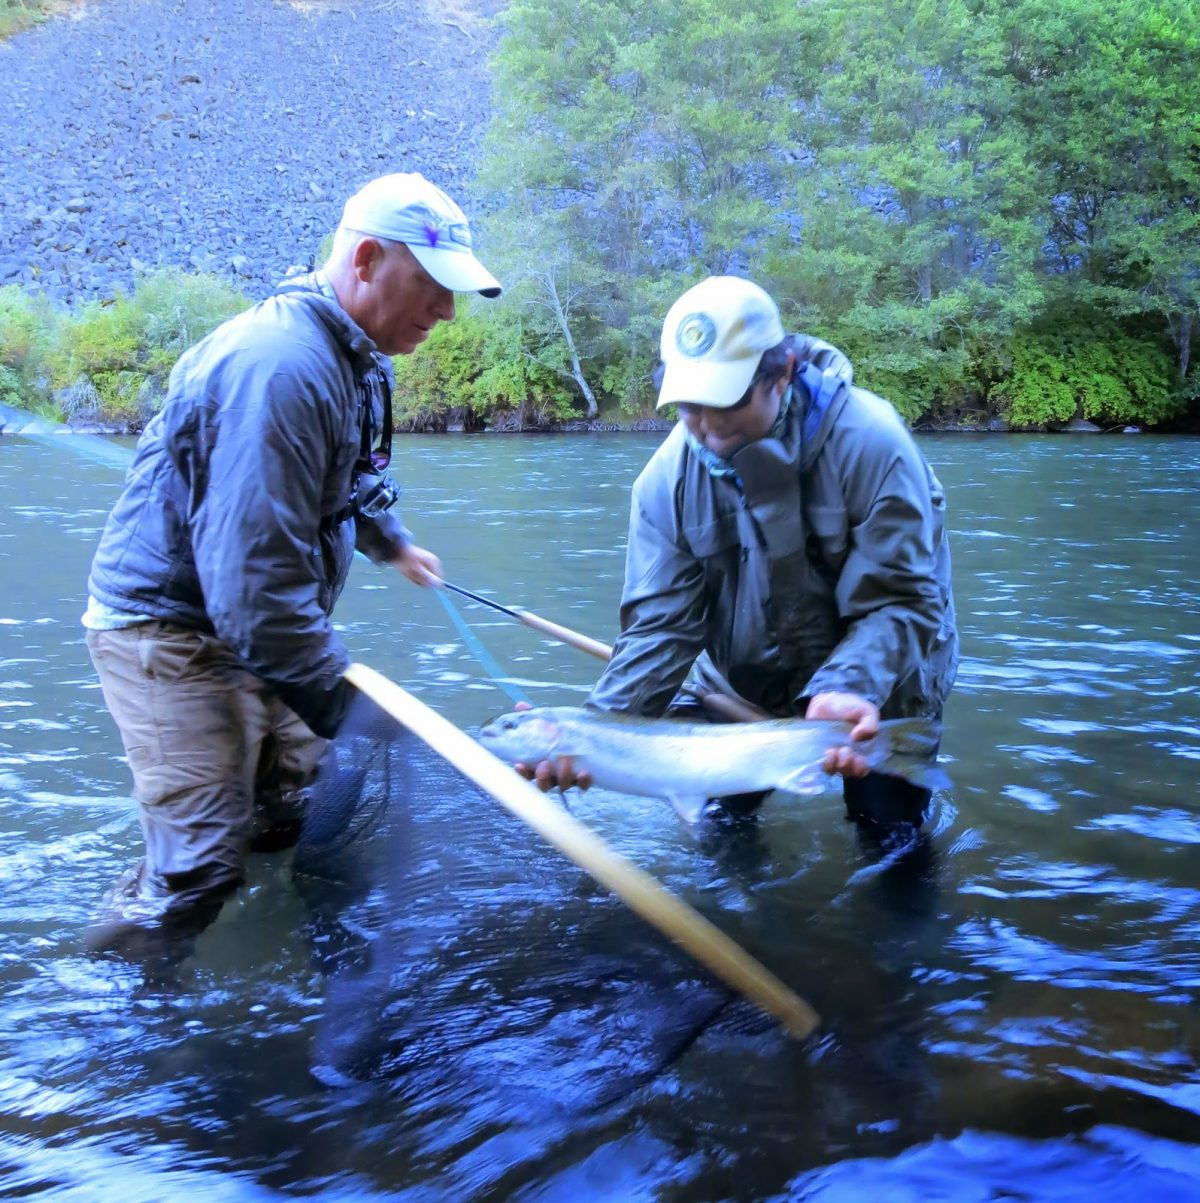 Klickitat river report 9 4 14 the evening hatch for Klickitat river fishing report